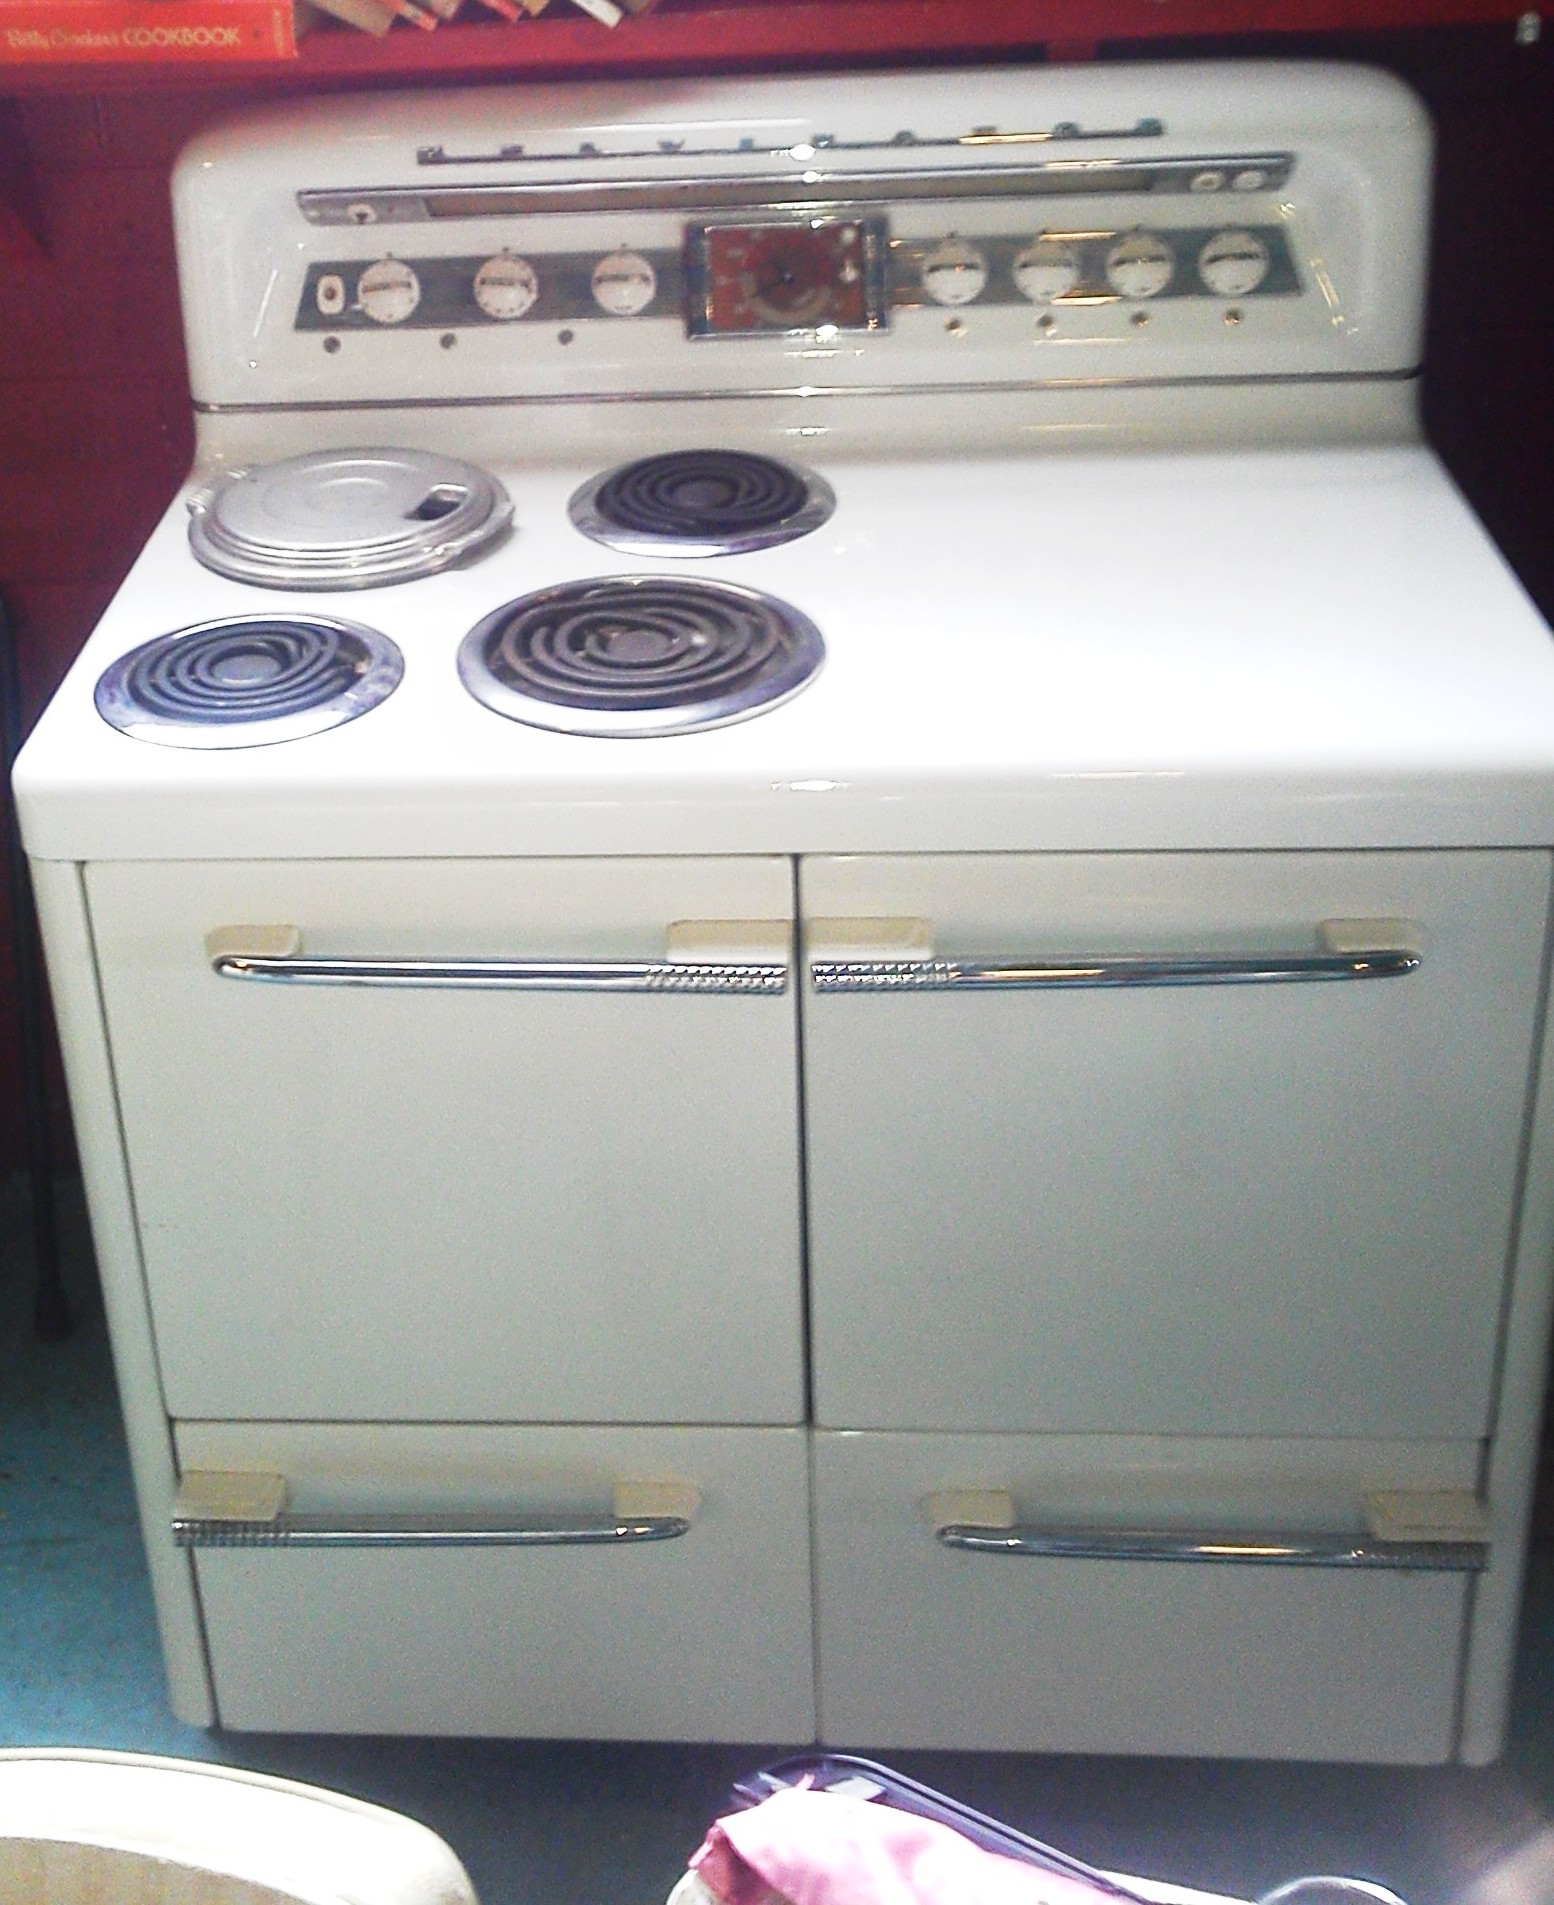 Kelvinator Stove Model Numbers Free Download Range Wiring Diagram Electric Antique Appraisal Instappraisal